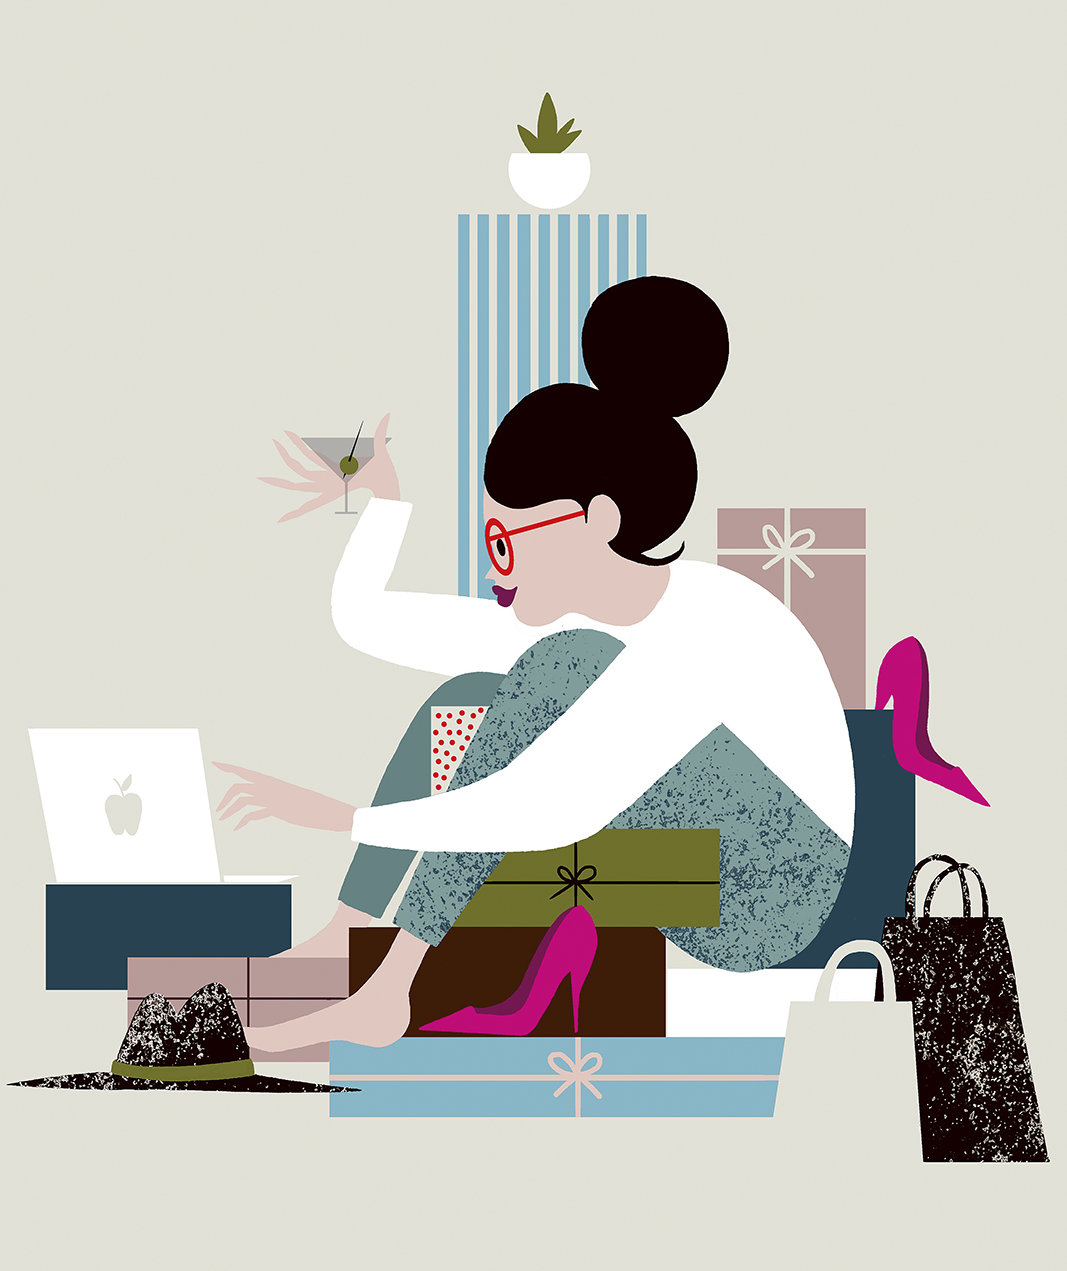 mindful-online-shopping